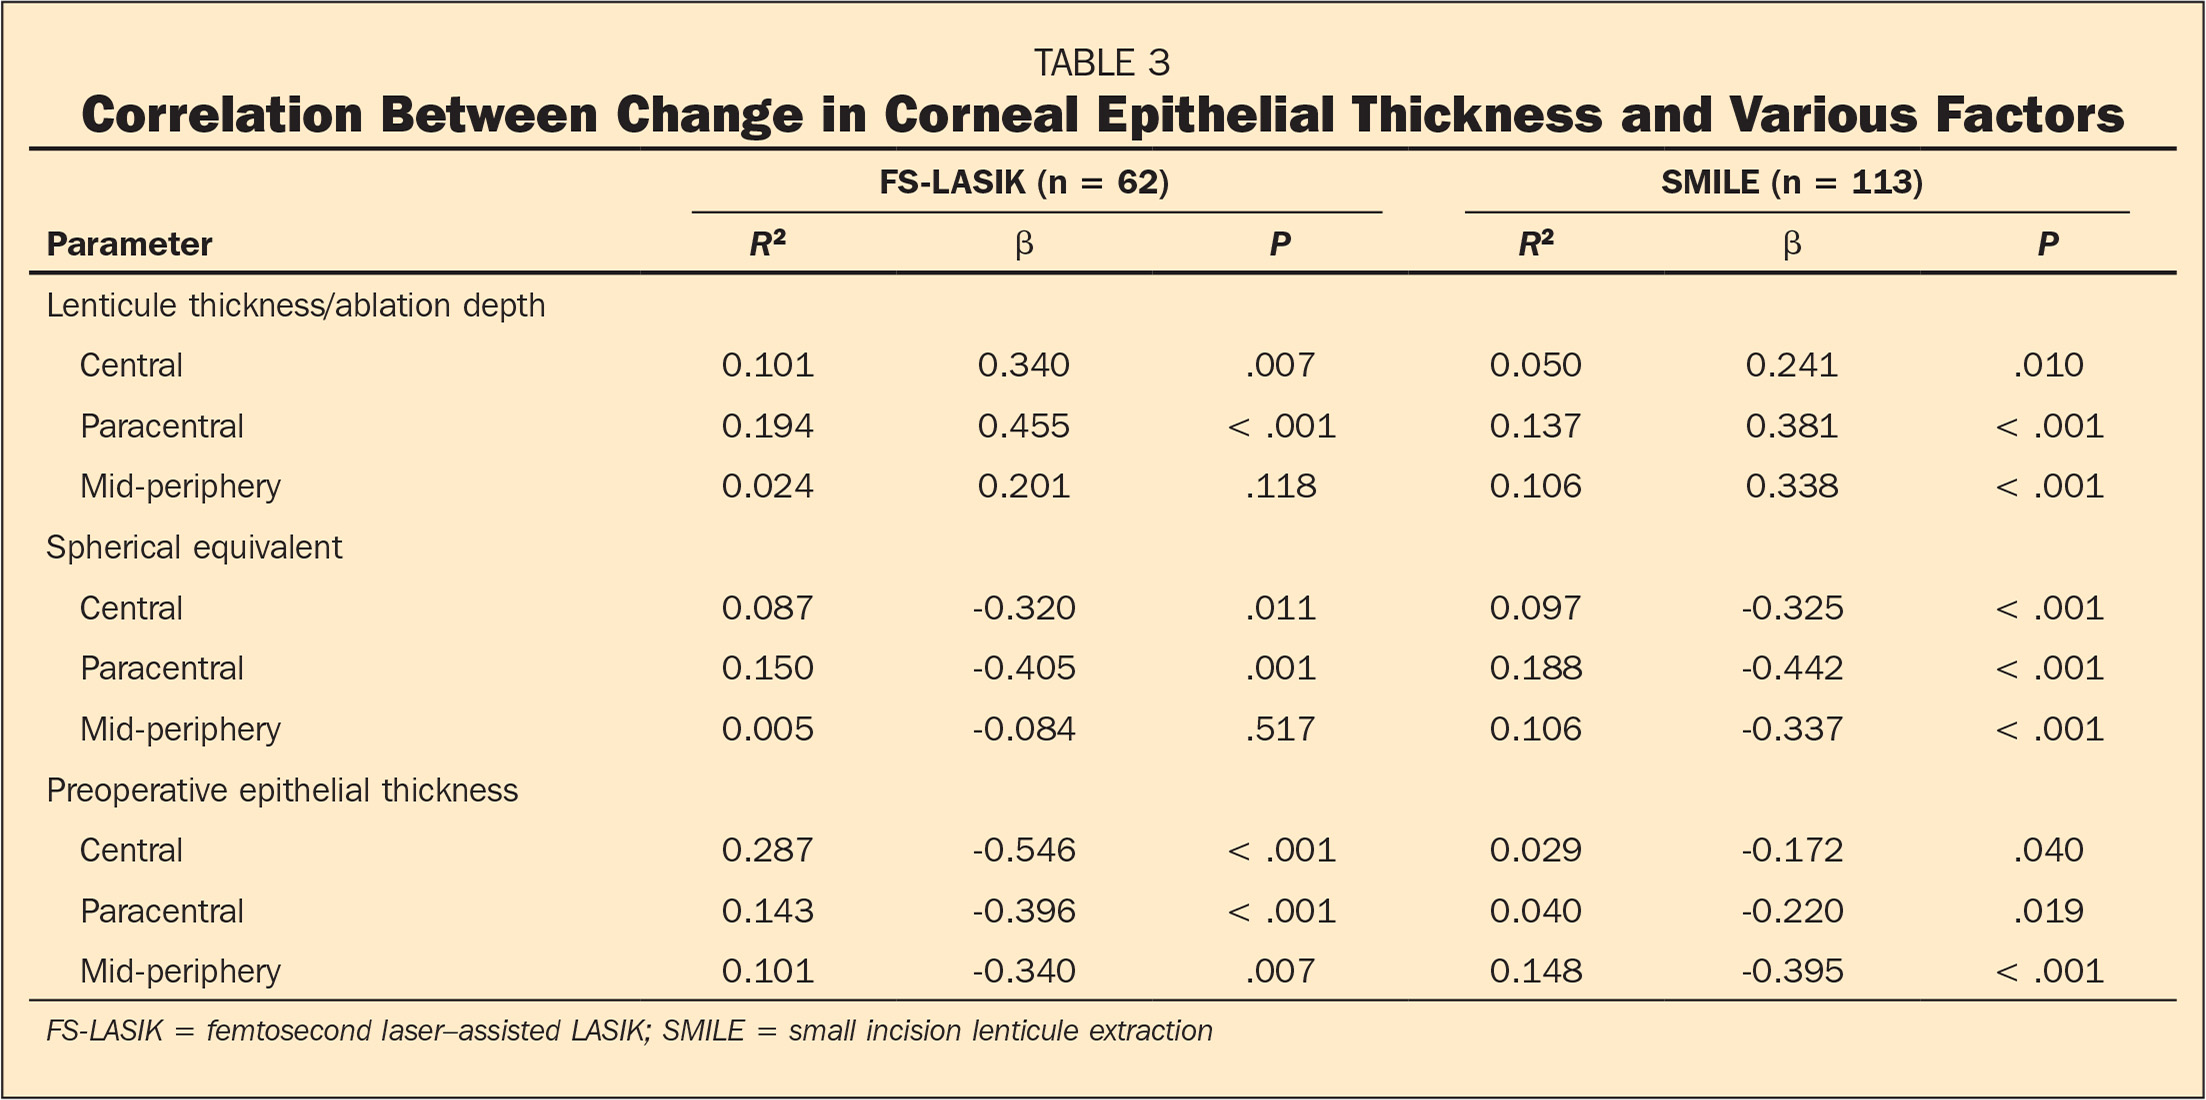 Correlation Between Change in Corneal Epithelial Thickness and Various Factors